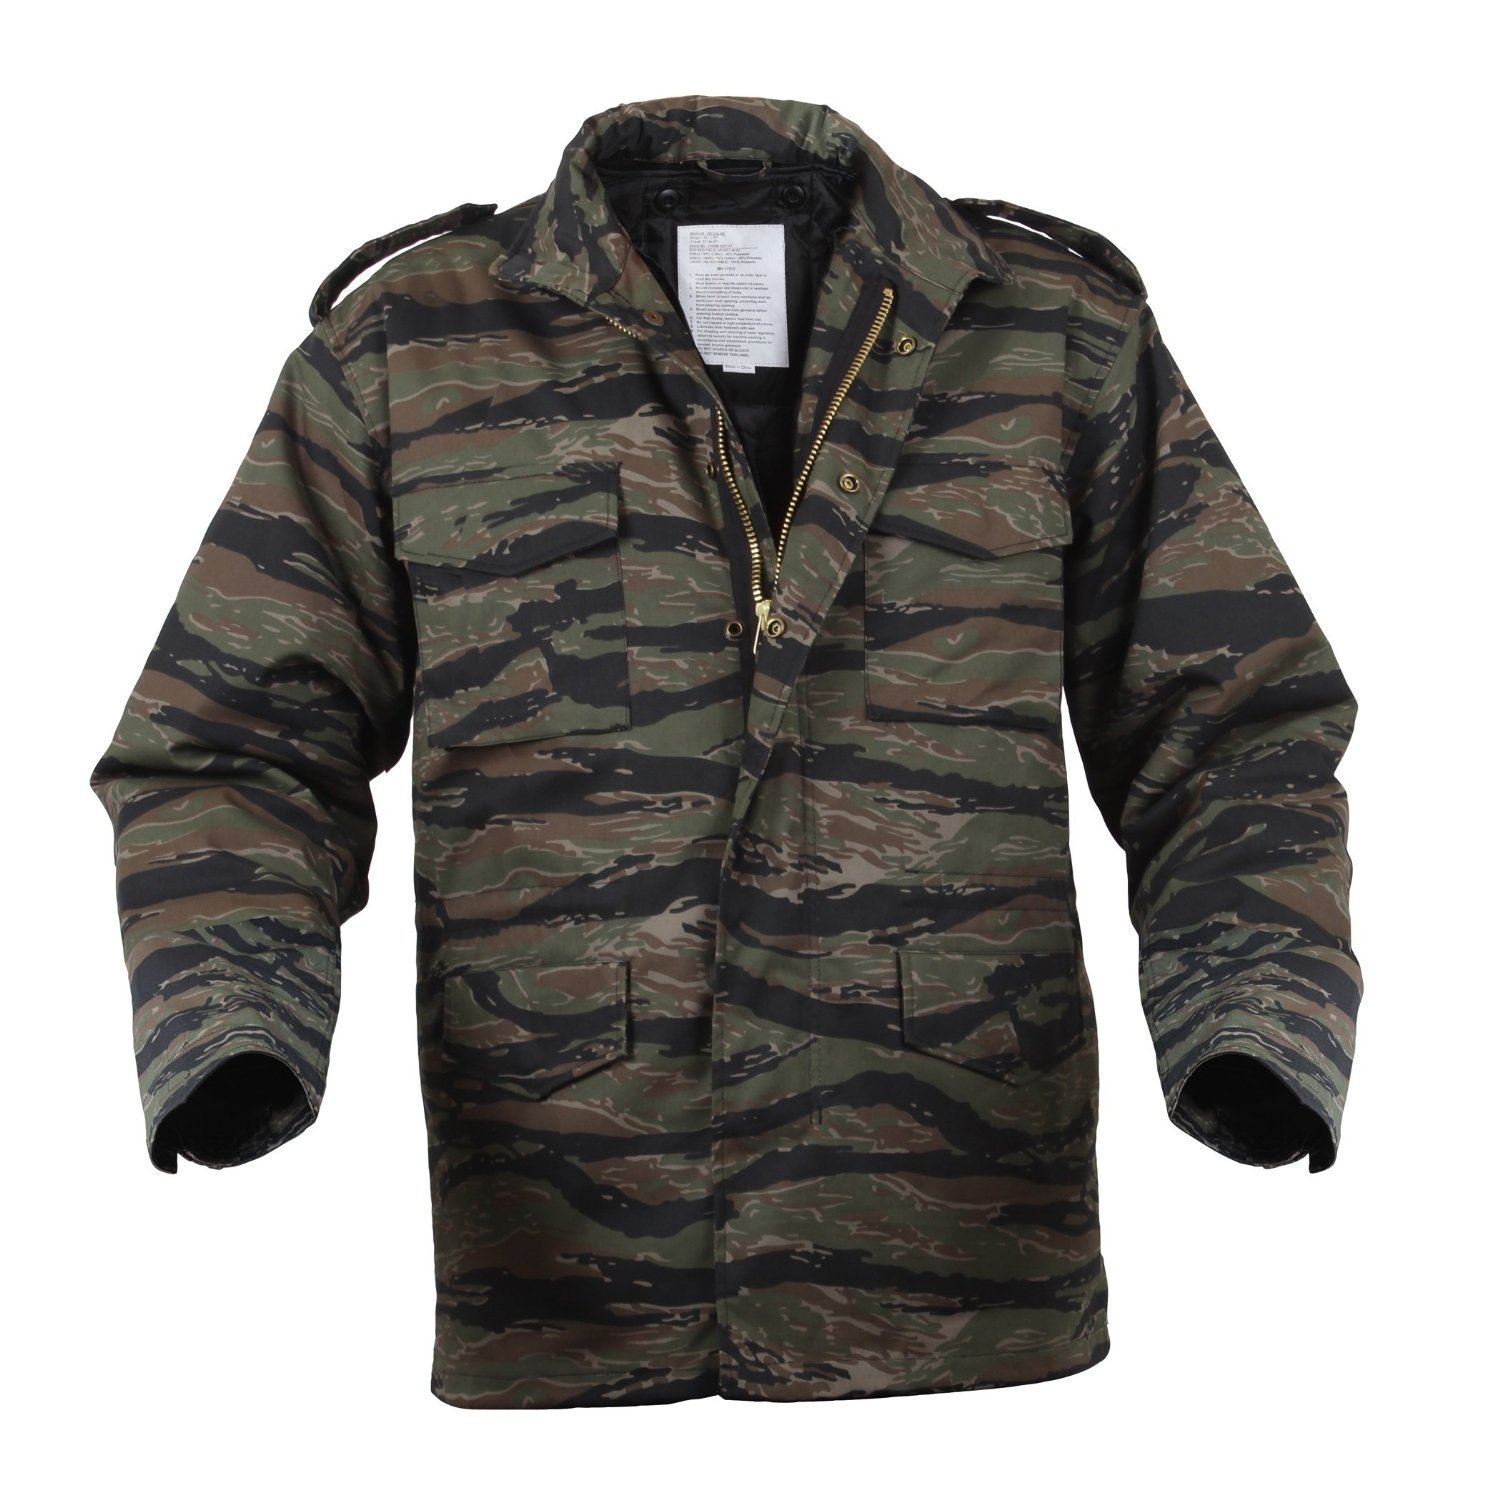 3d79c0c191ea0 Amazon.com: Rothco M-65 Field Jacket With Liner - TIGER STRIPE: Sports &  Outdoors